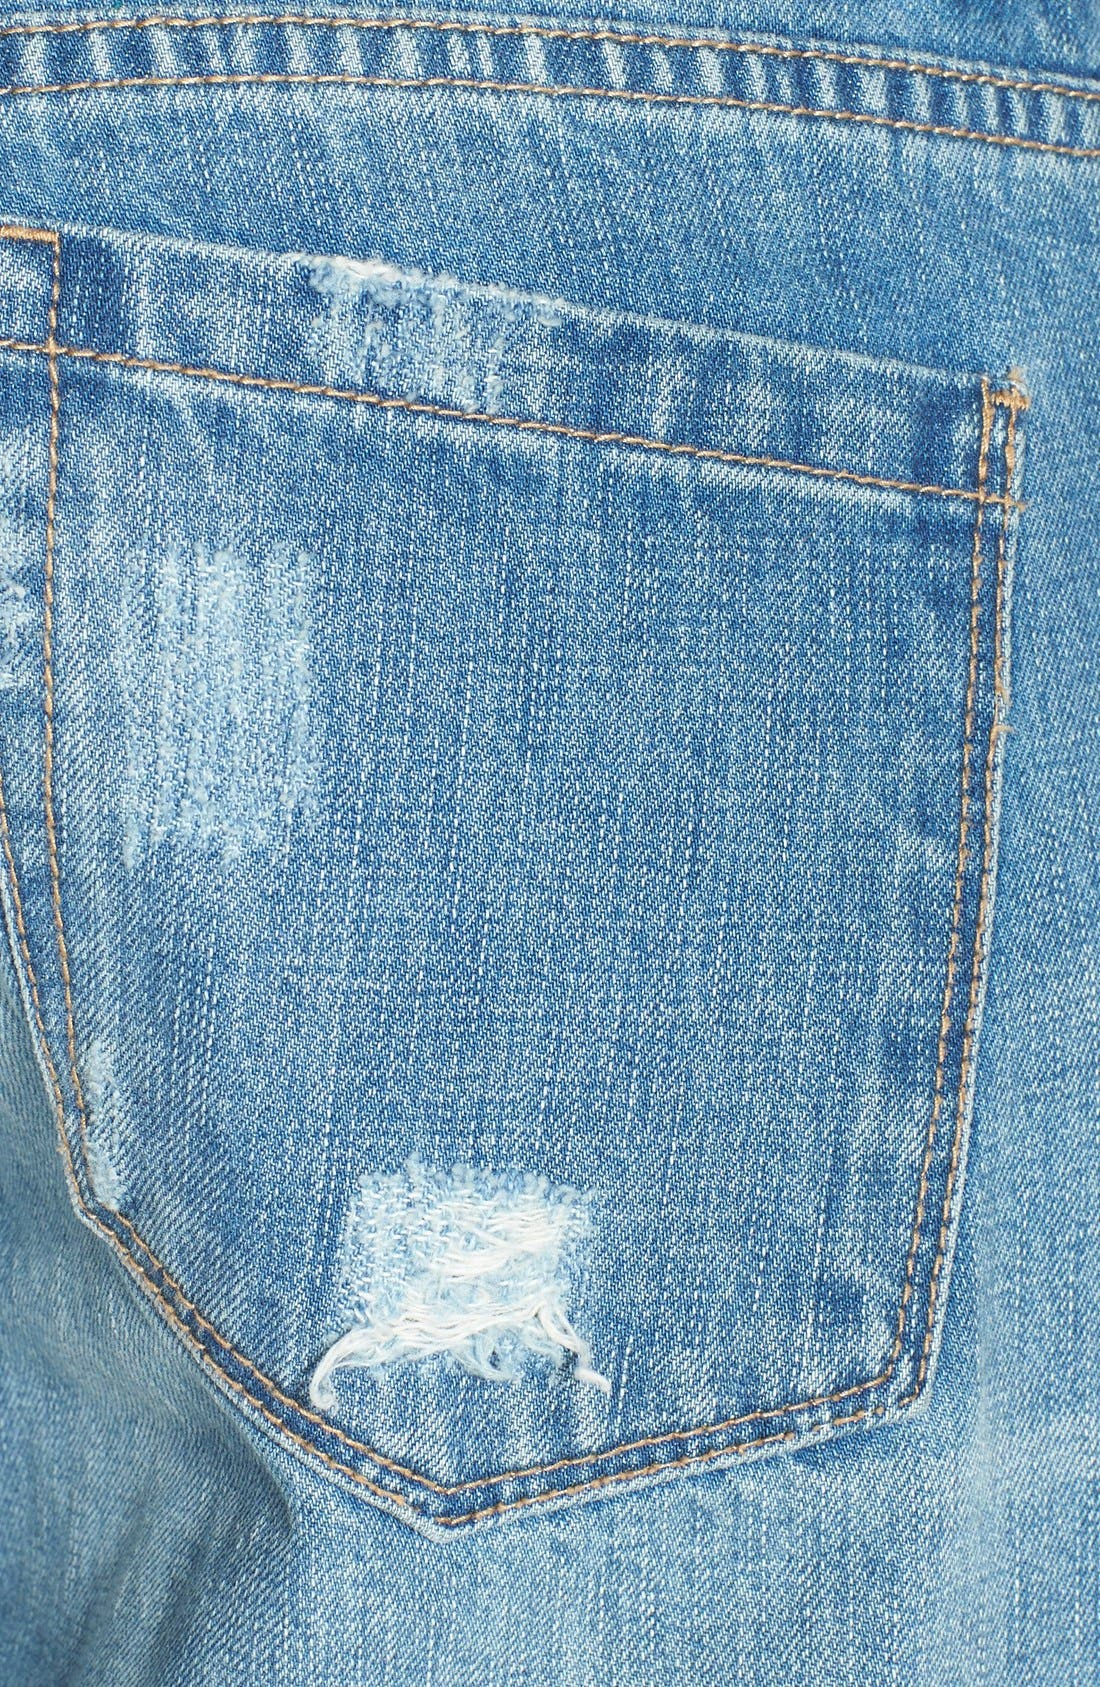 Alternate Image 3  - BLANKNYC Destroyed Boyfriend Jeans (Torn to Shreds)